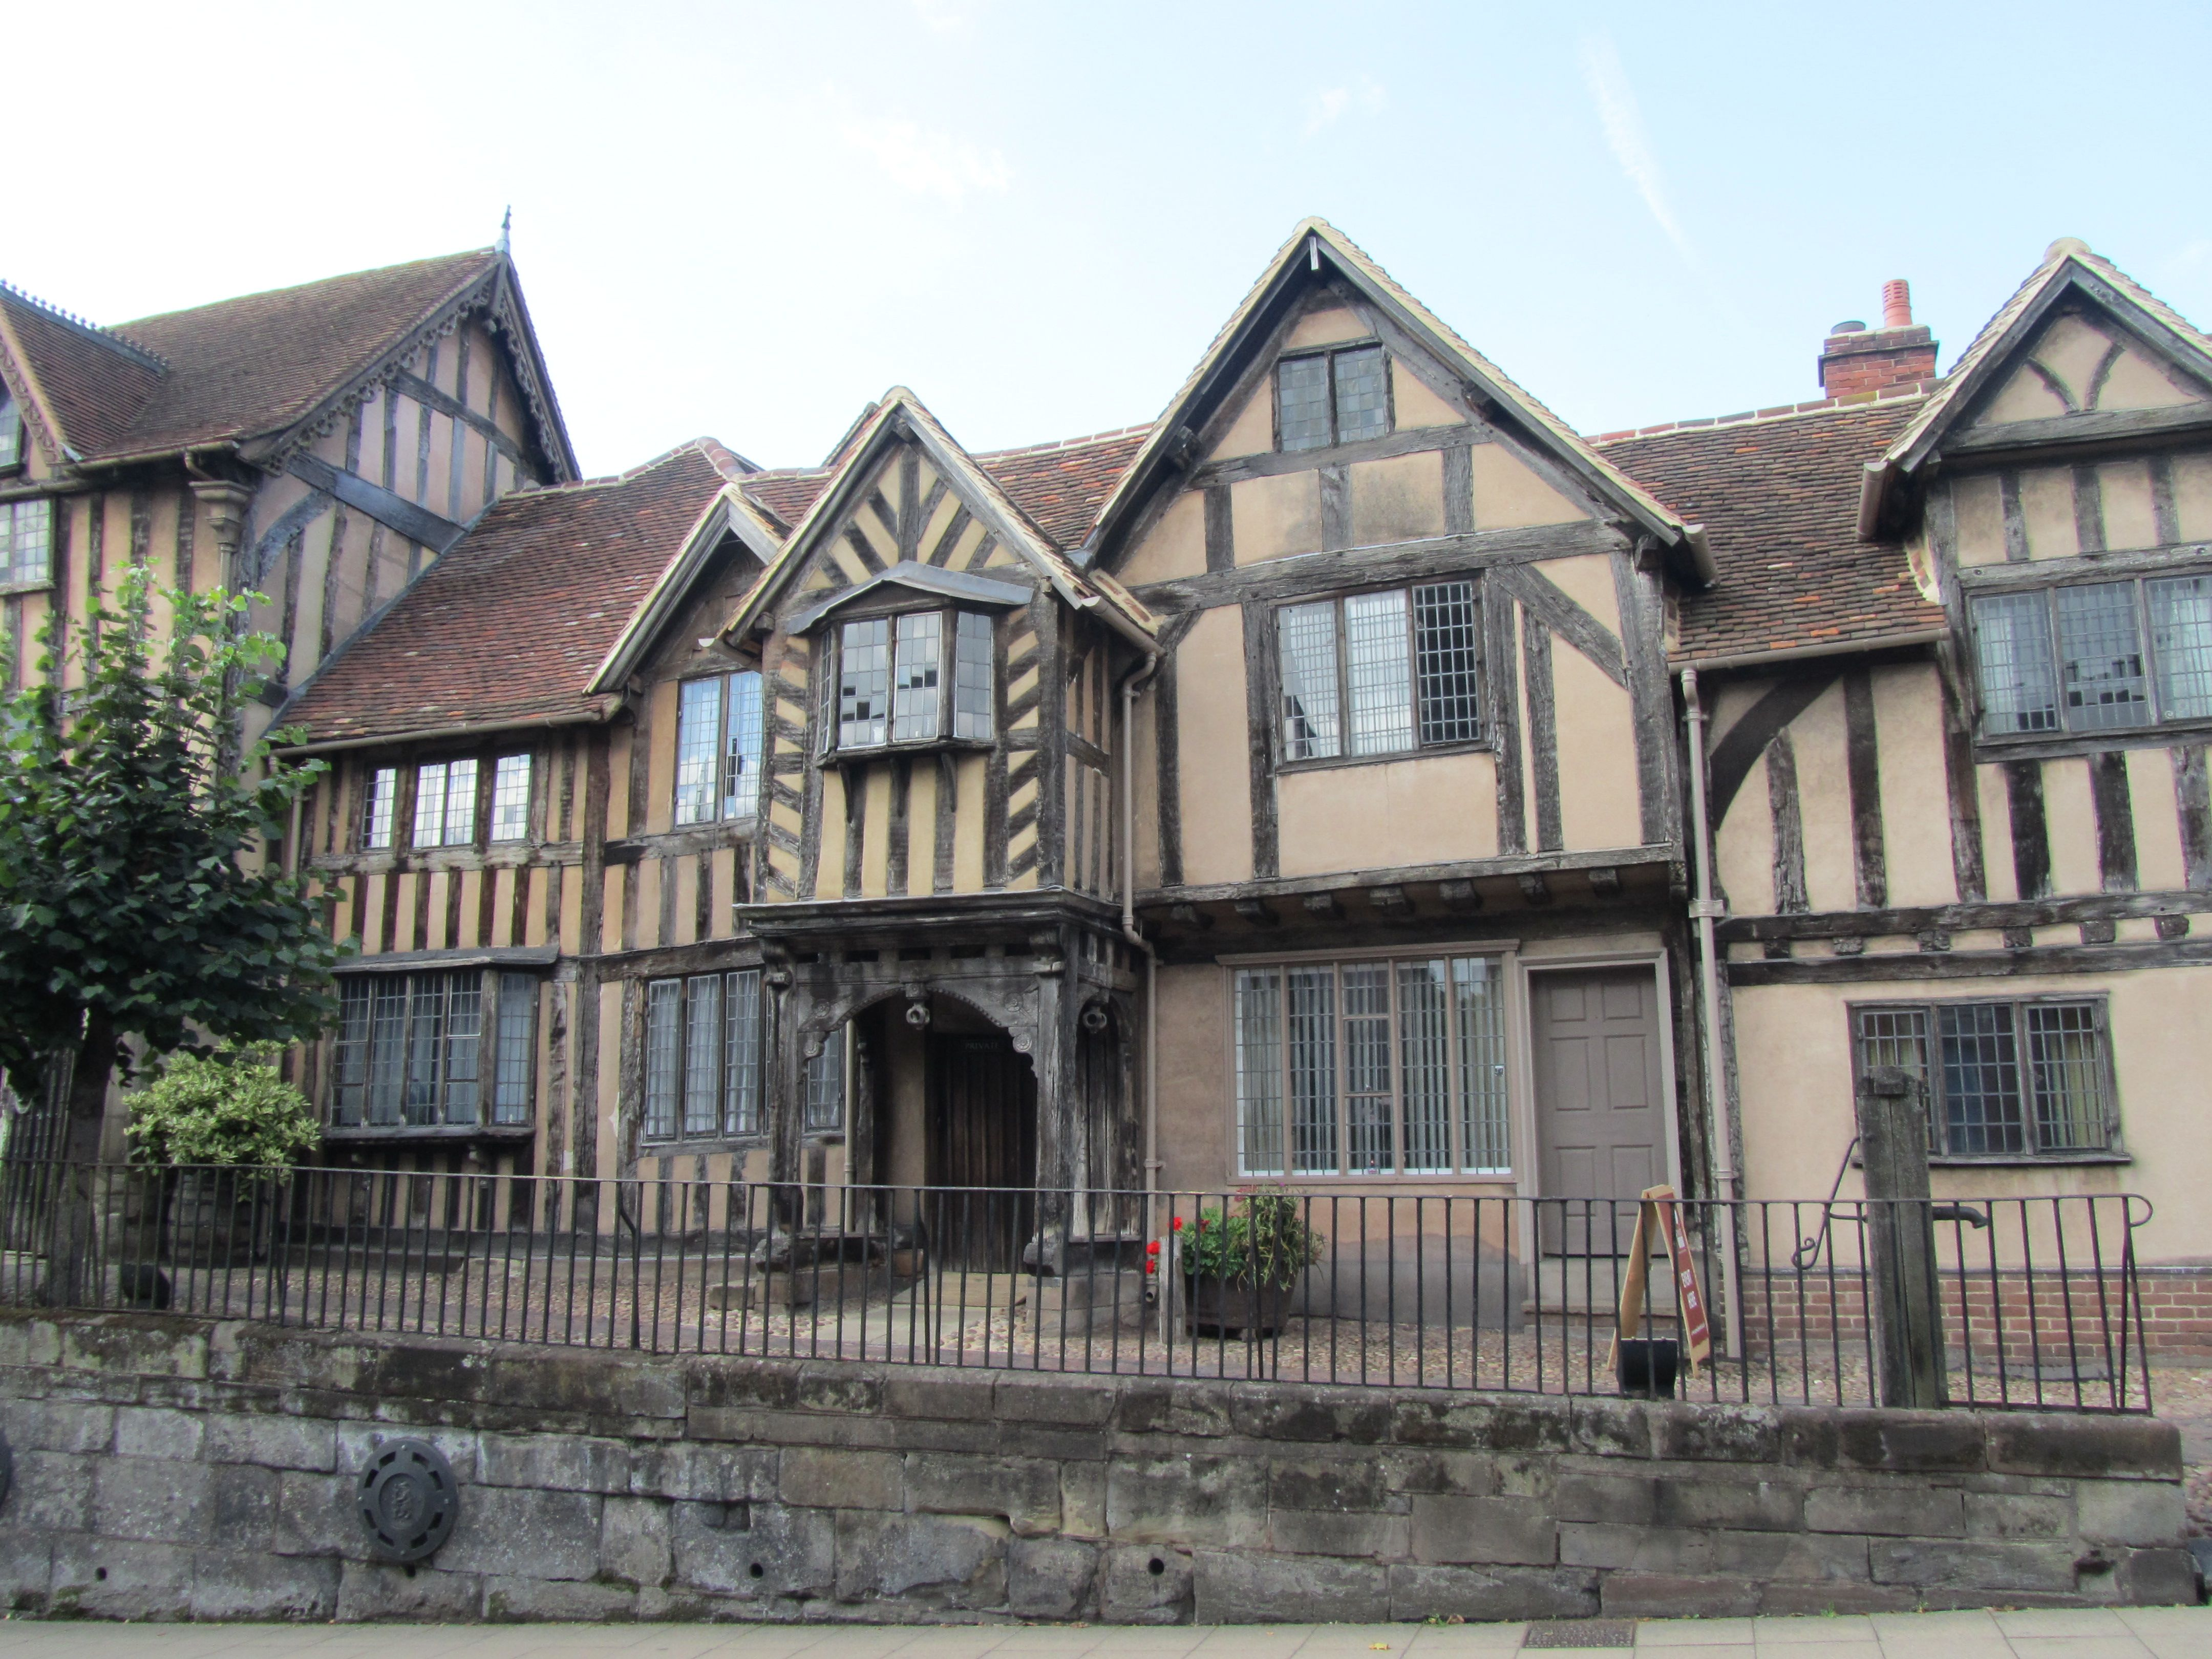 The Lord Leycester Hospital Warwick Dating From The Late